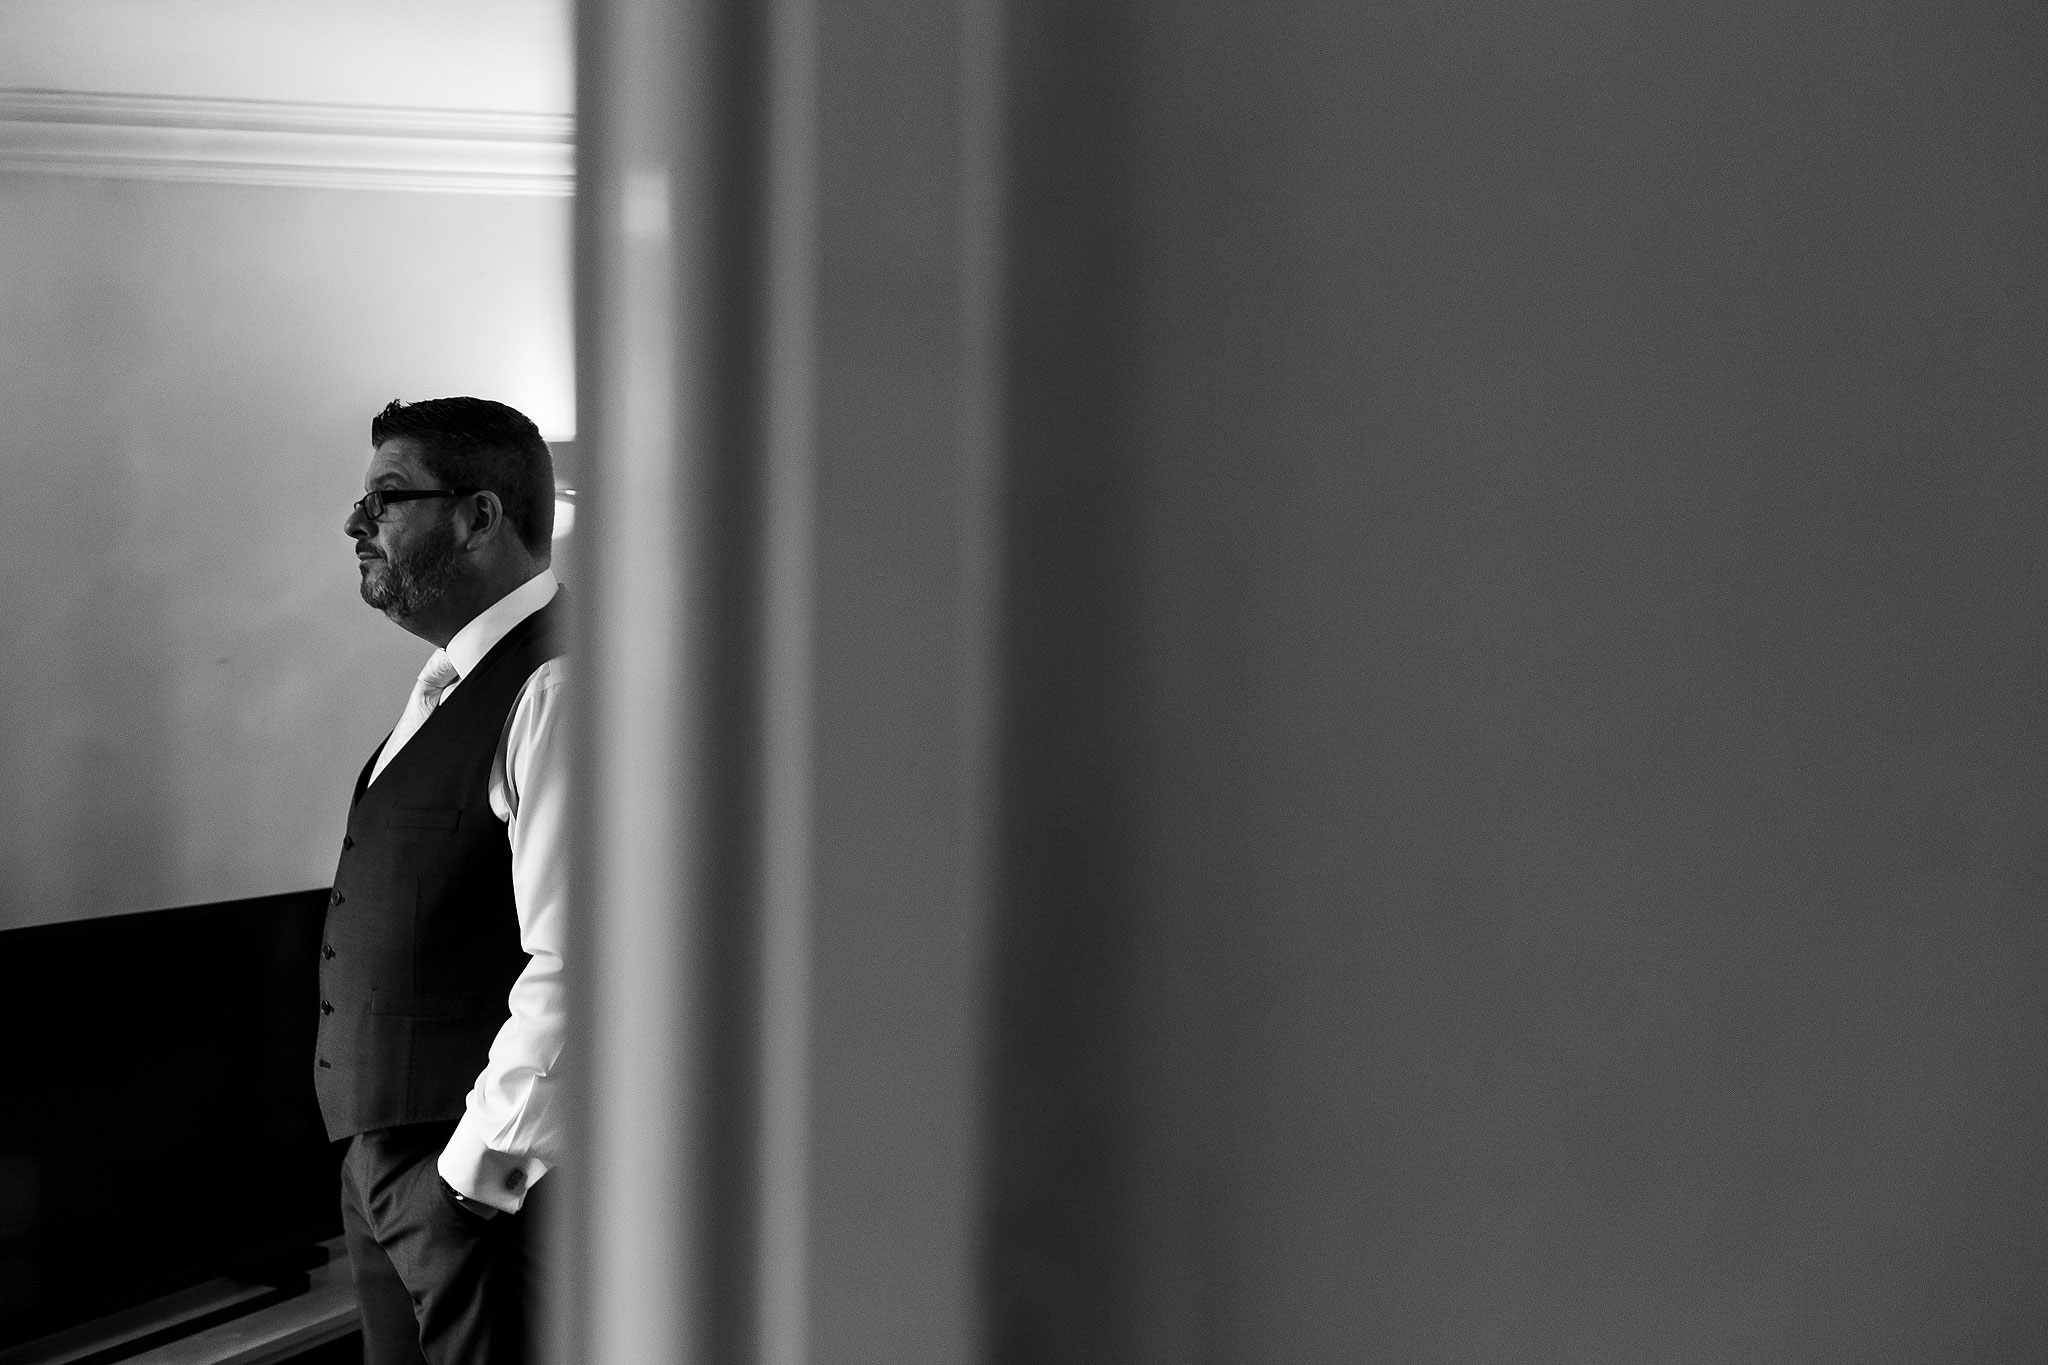 Groom waiting nervously as he looks out the window